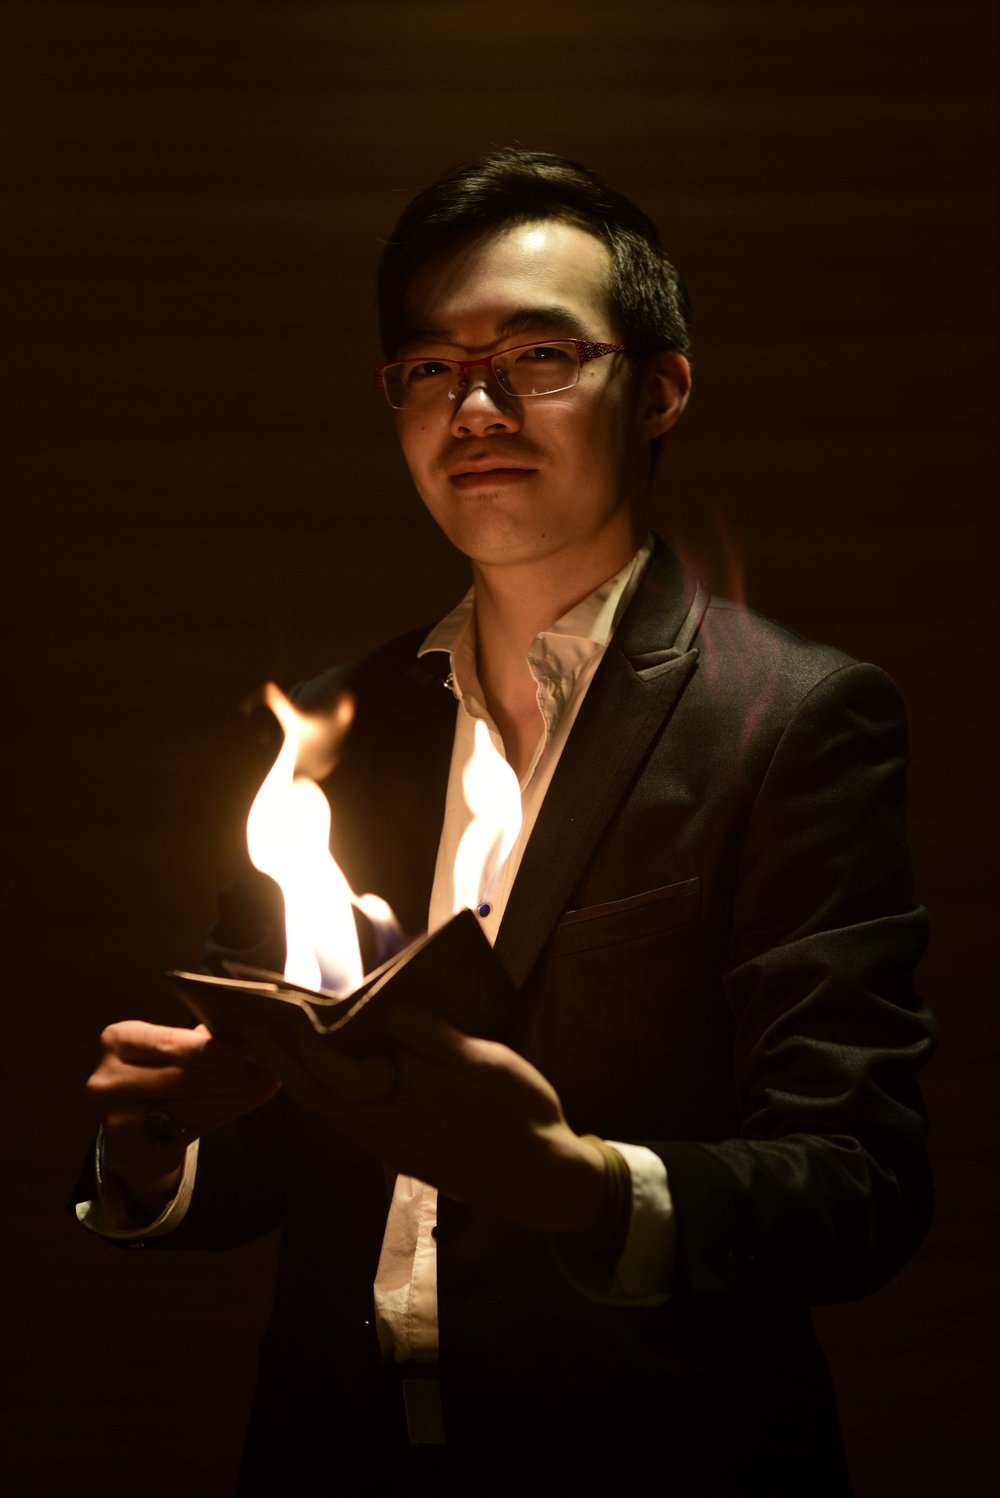 Julian Yu - The Card Master- Cheeky, Dexterous, Crazy Sleight of HandJulian's performance style is a combination of mystery and humour. His unique ability to dazzle a large crowd with just a deck of cards is unmatched.Performance experience: 7 years